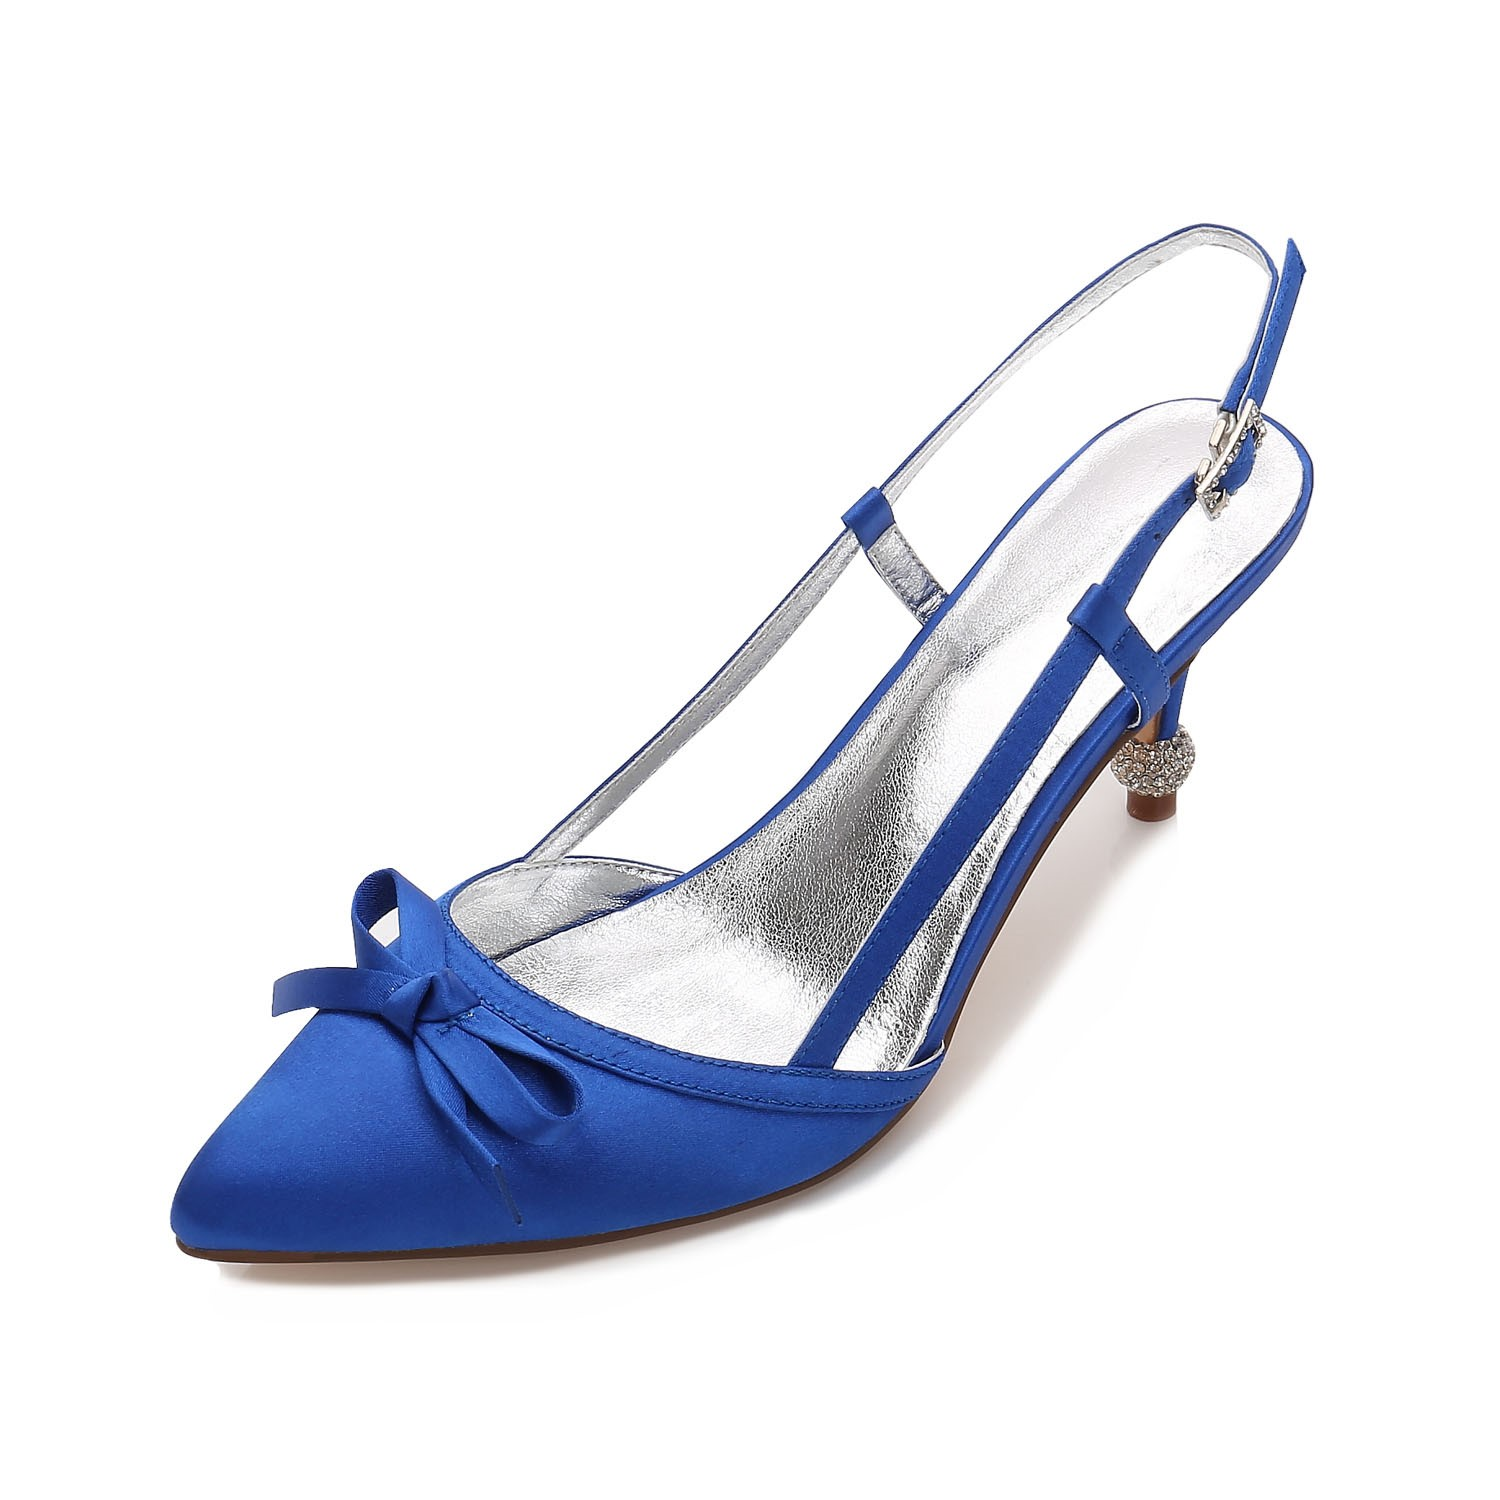 Ericdress Slingback Strap Stiletto Heel Wedding Shoes with Bowknot